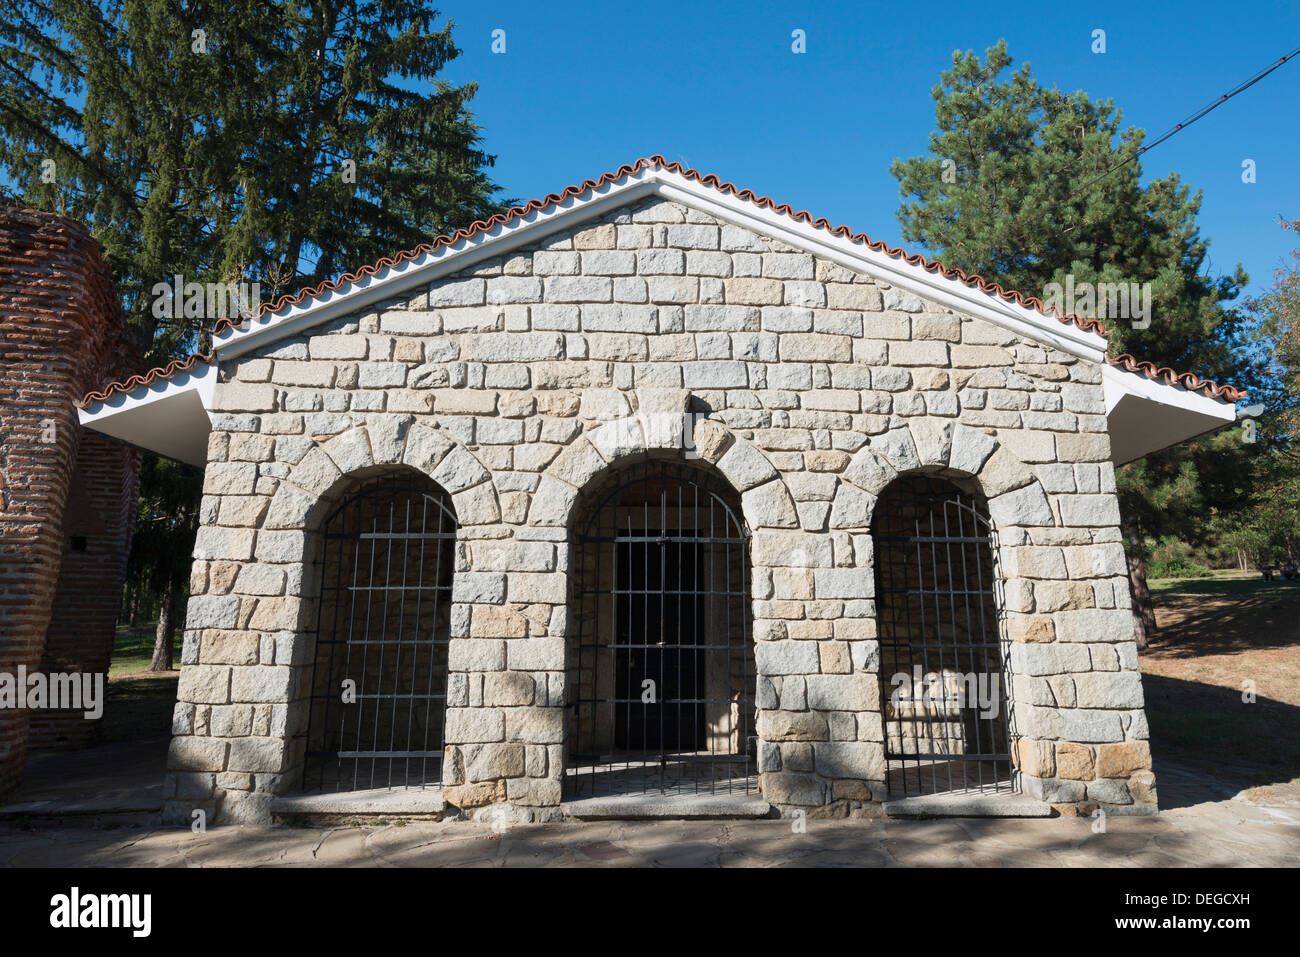 Thracian Tomb of Kazanlak, UNESCO World Heritage Site, Kazanlak, Bulgaria, Europe - Stock Image